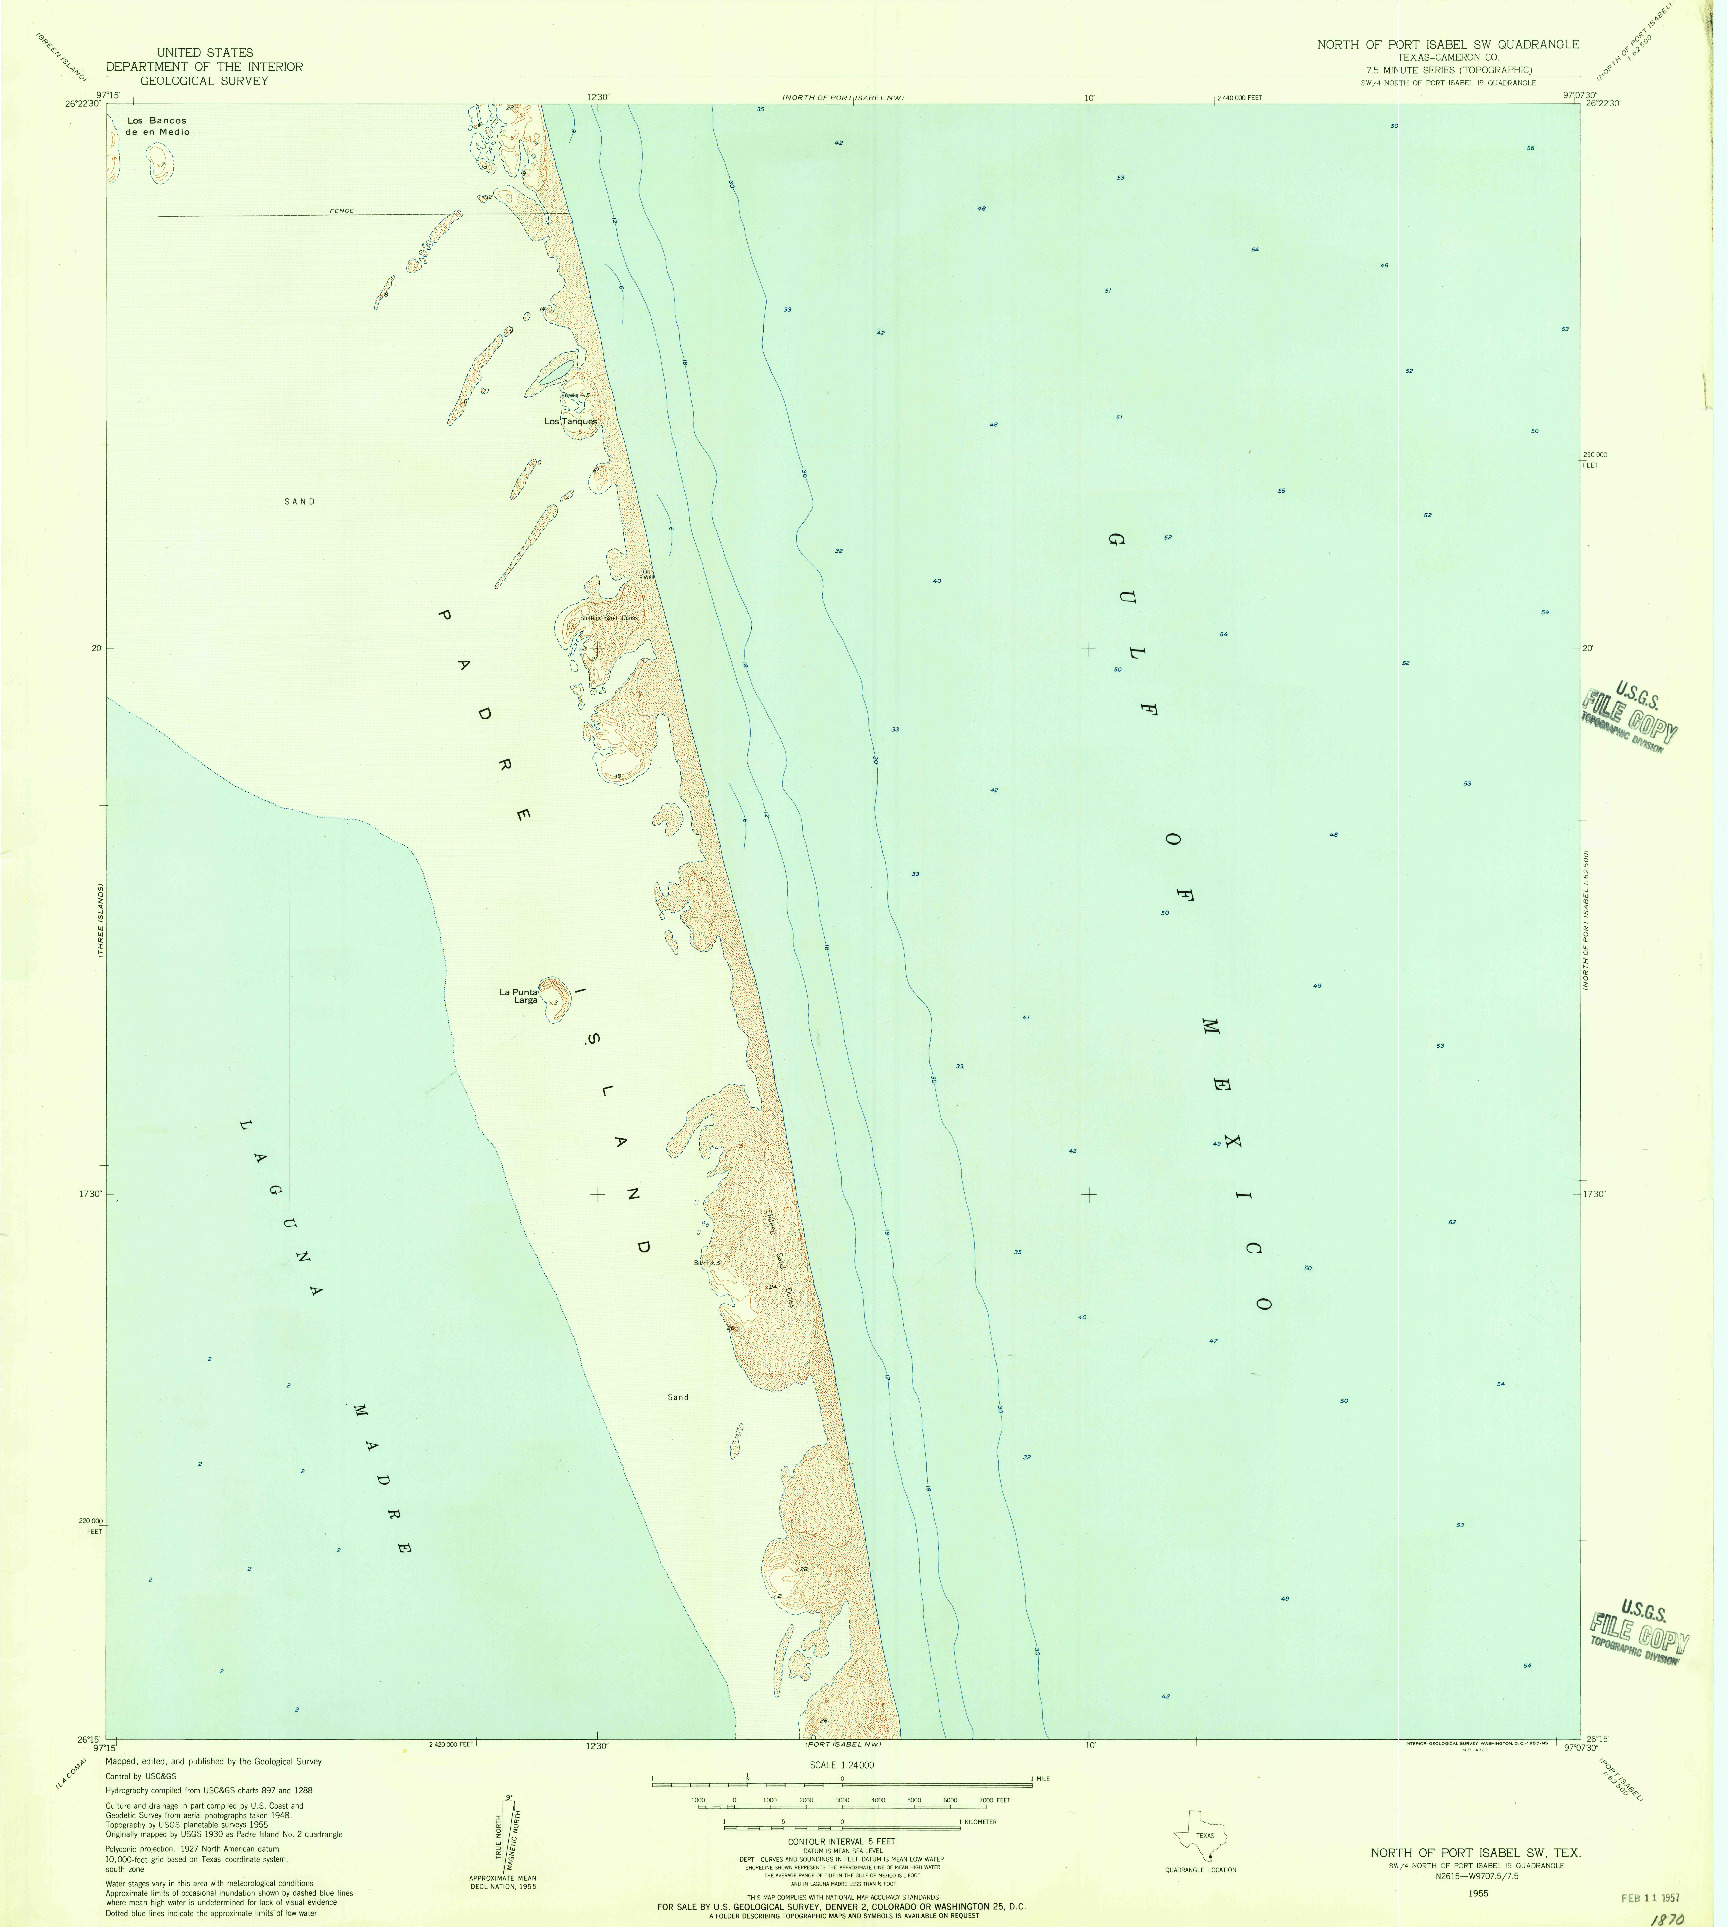 USGS 1:24000-SCALE QUADRANGLE FOR NORTH OF PORT ISABEL SW, TX 1955